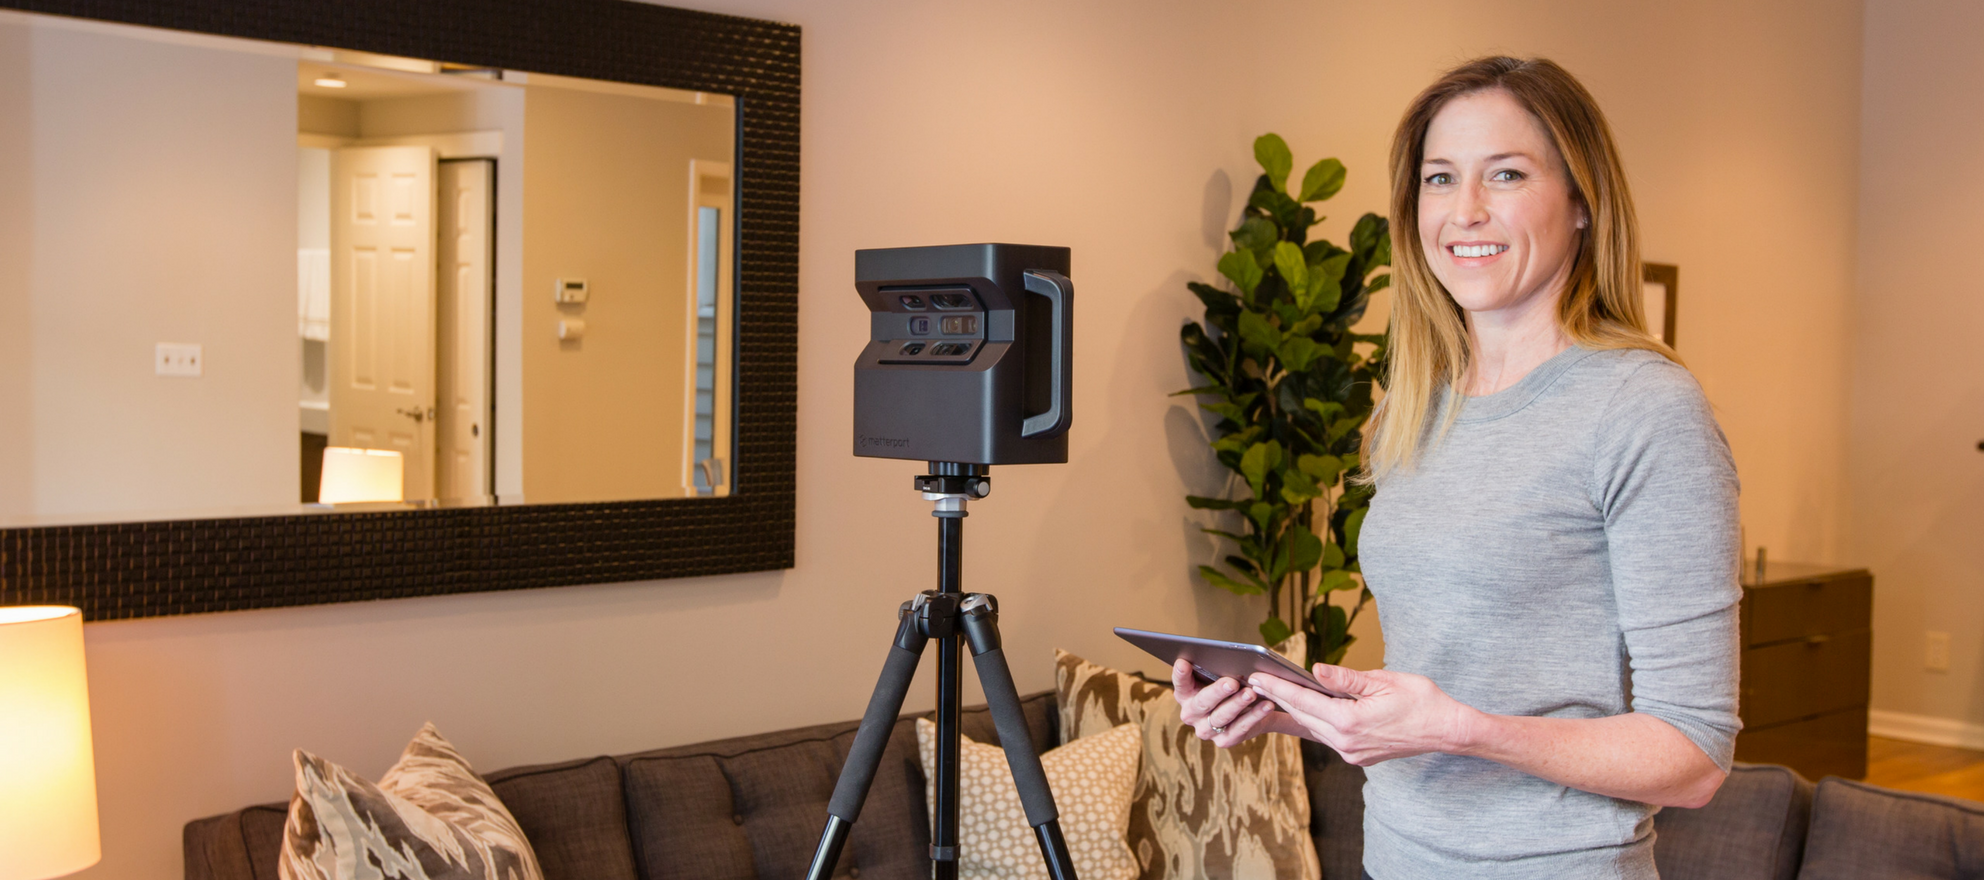 matterport terms of service